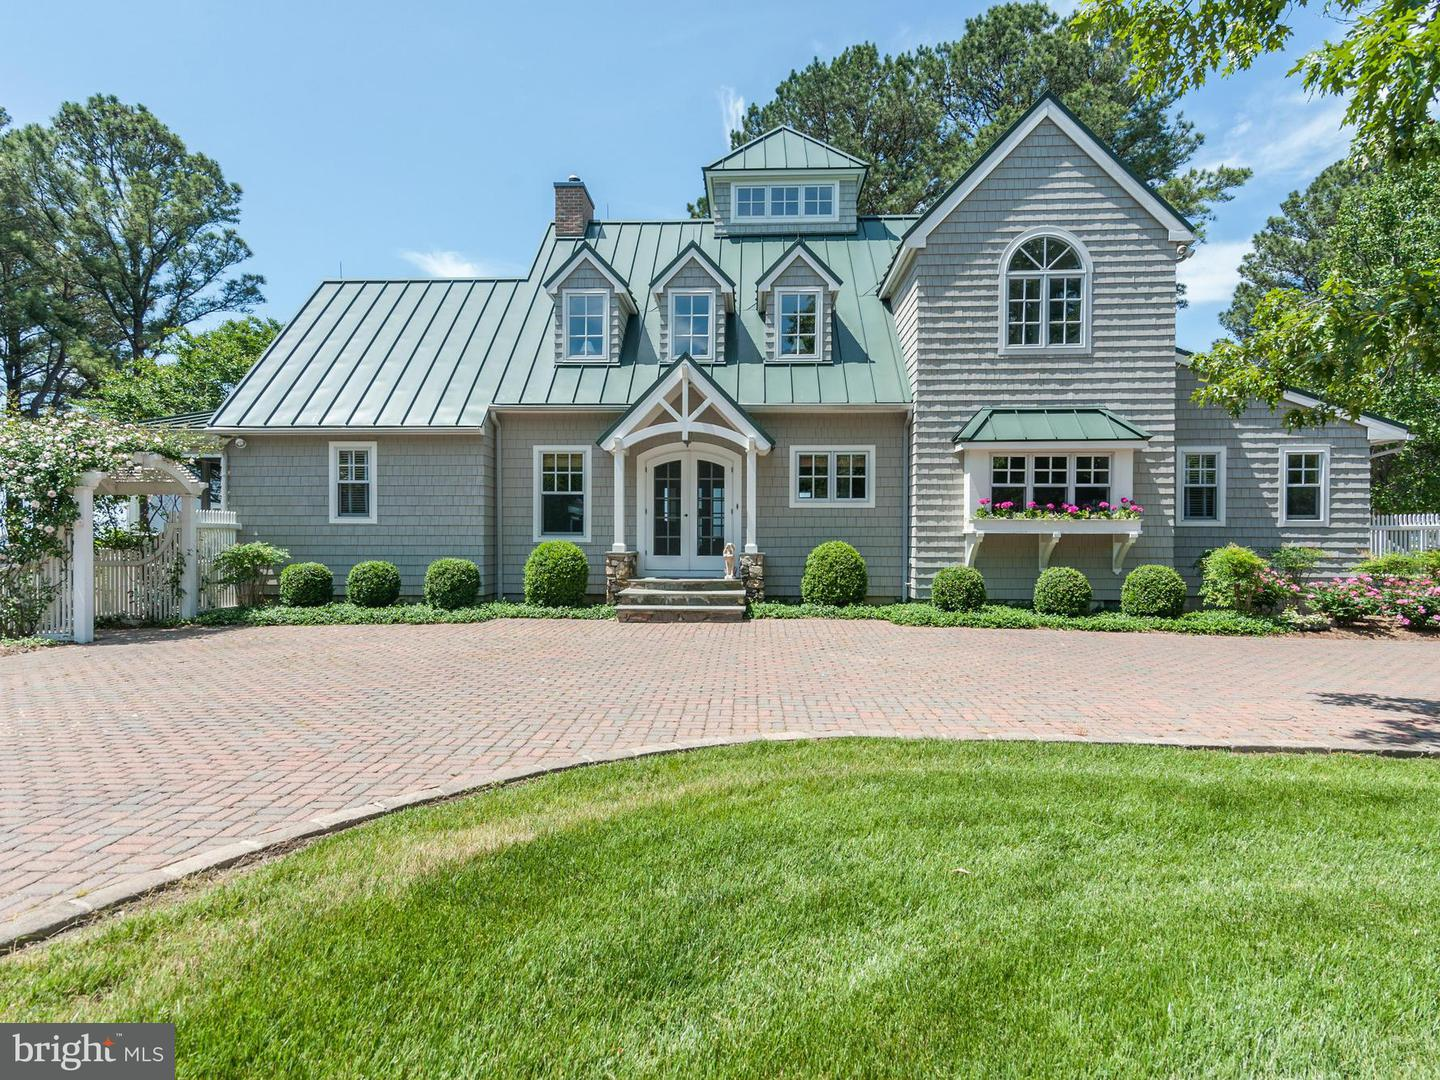 Single Family for Sale at 4784 Ferry Neck Rd Royal Oak, Maryland 21662 United States